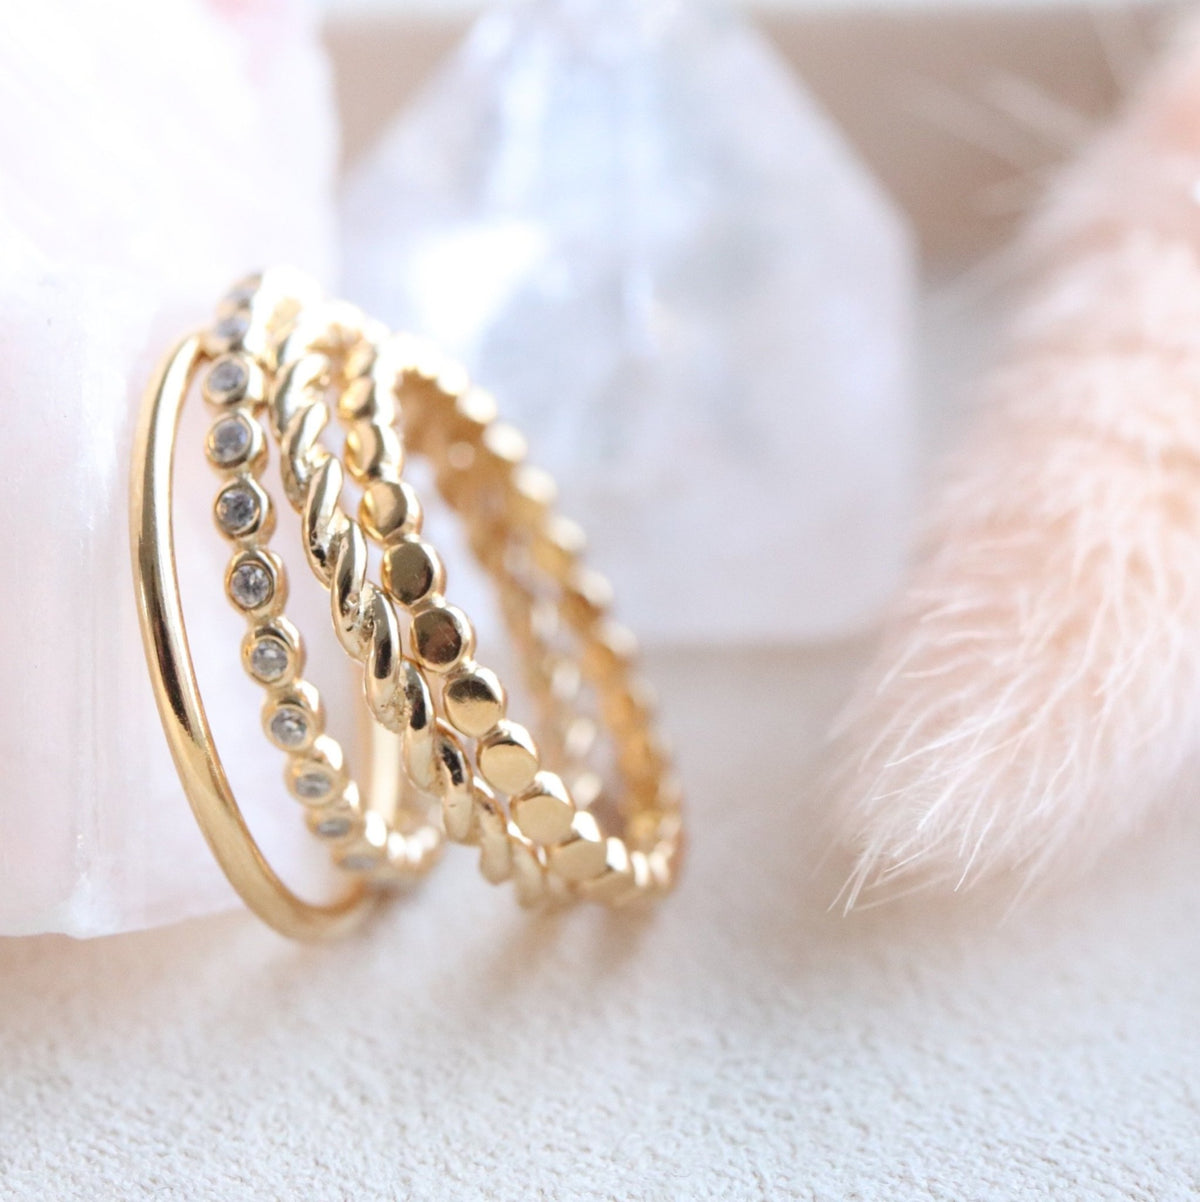 POISE THIN BAND RING - GOLD - SO PRETTY CARA COTTER